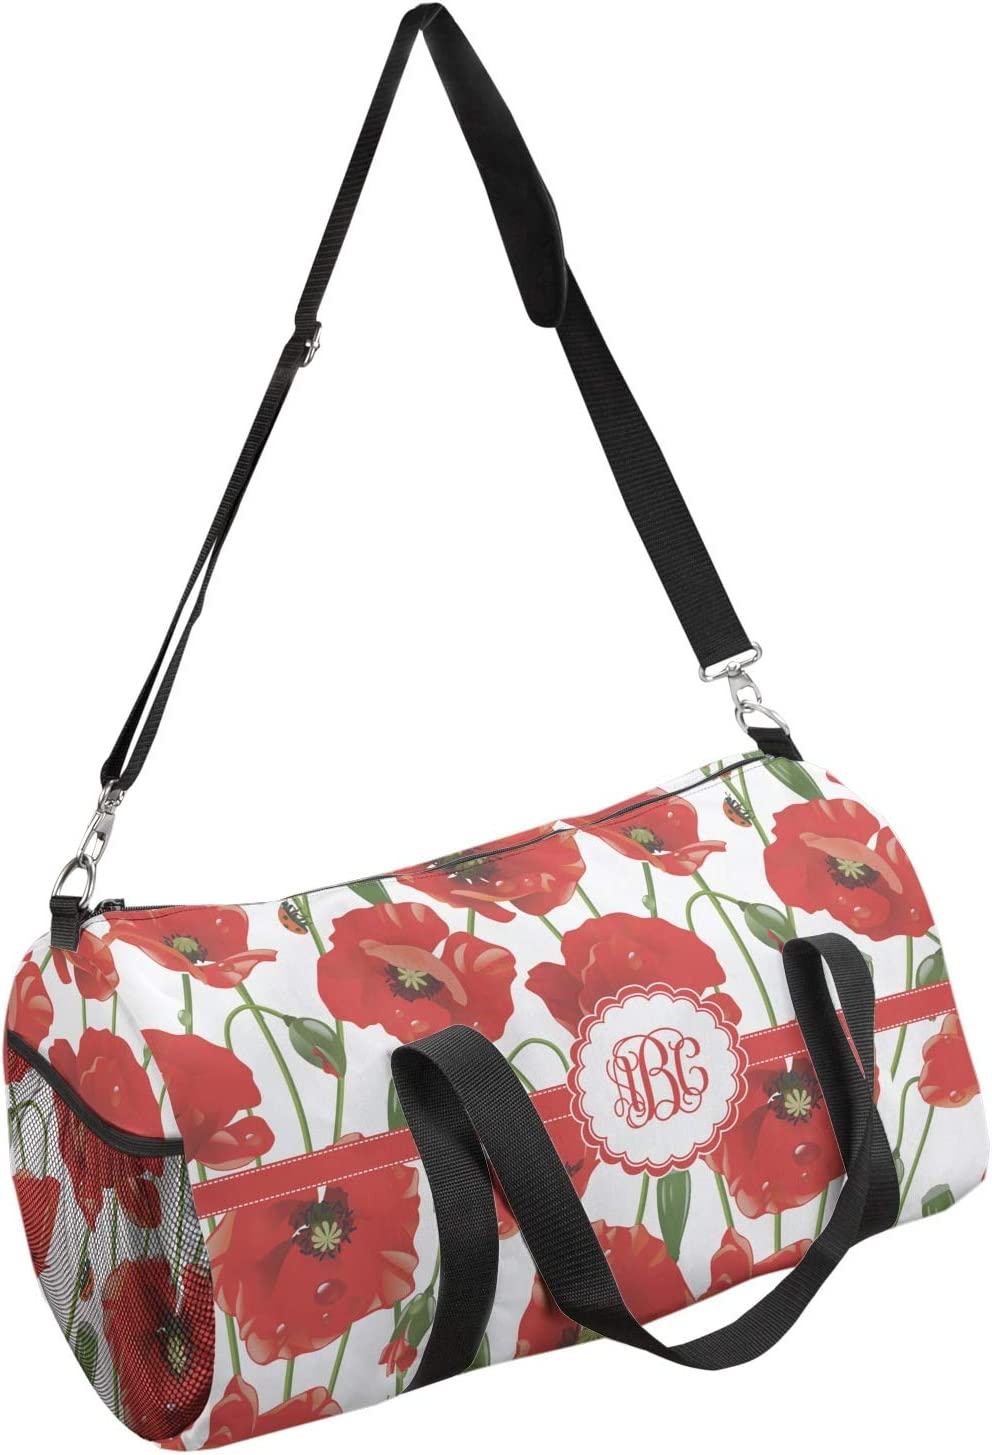 Personalized YouCustomizeIt Poppies Duffel Bag